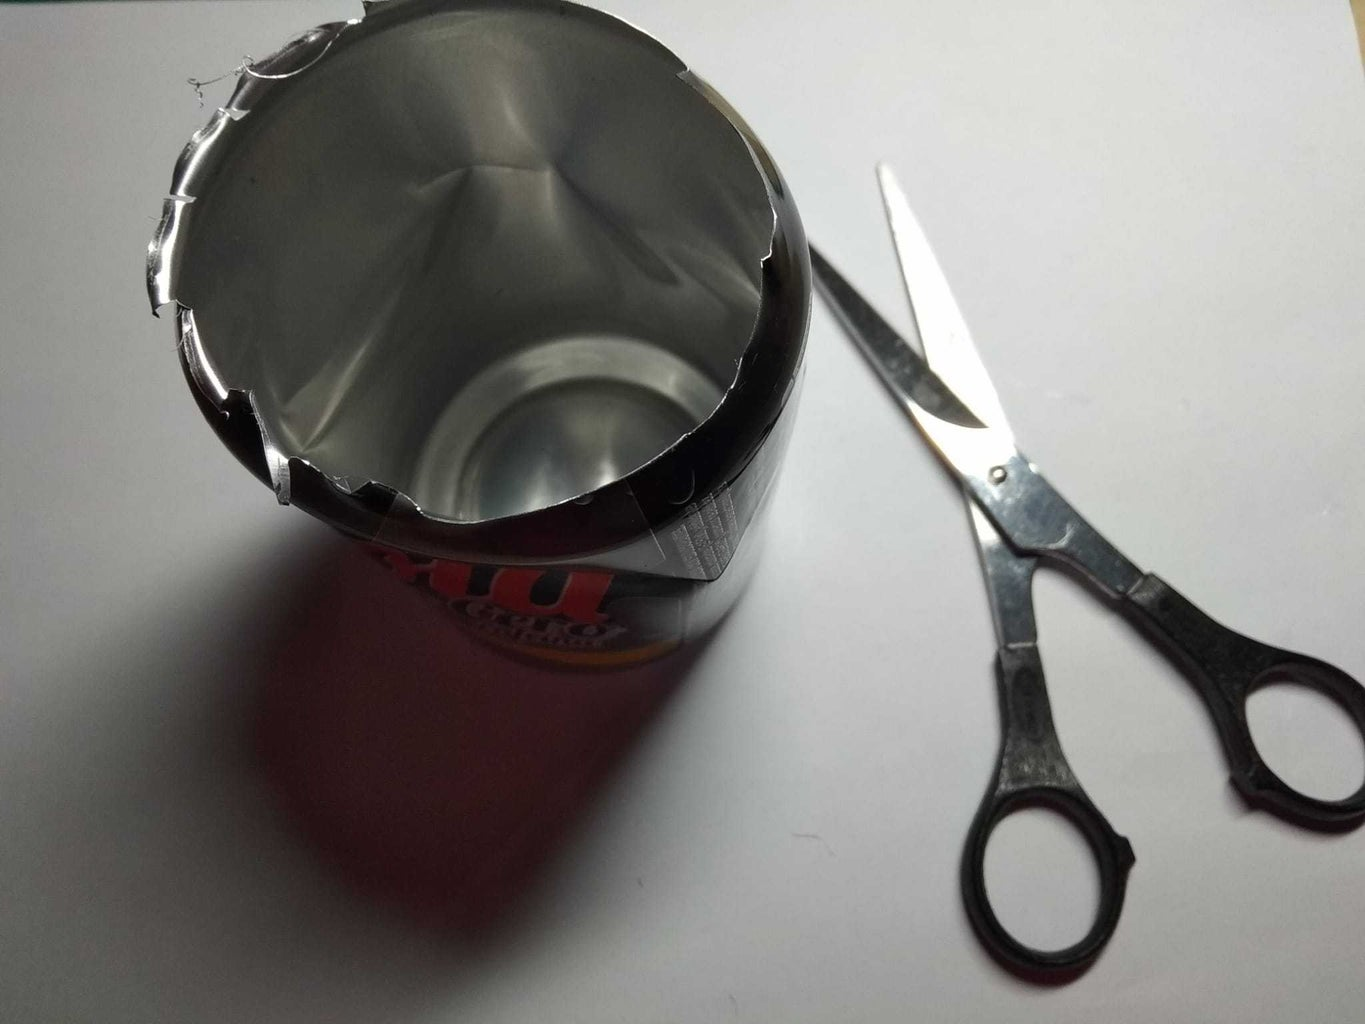 Step 1: Prepare the Can